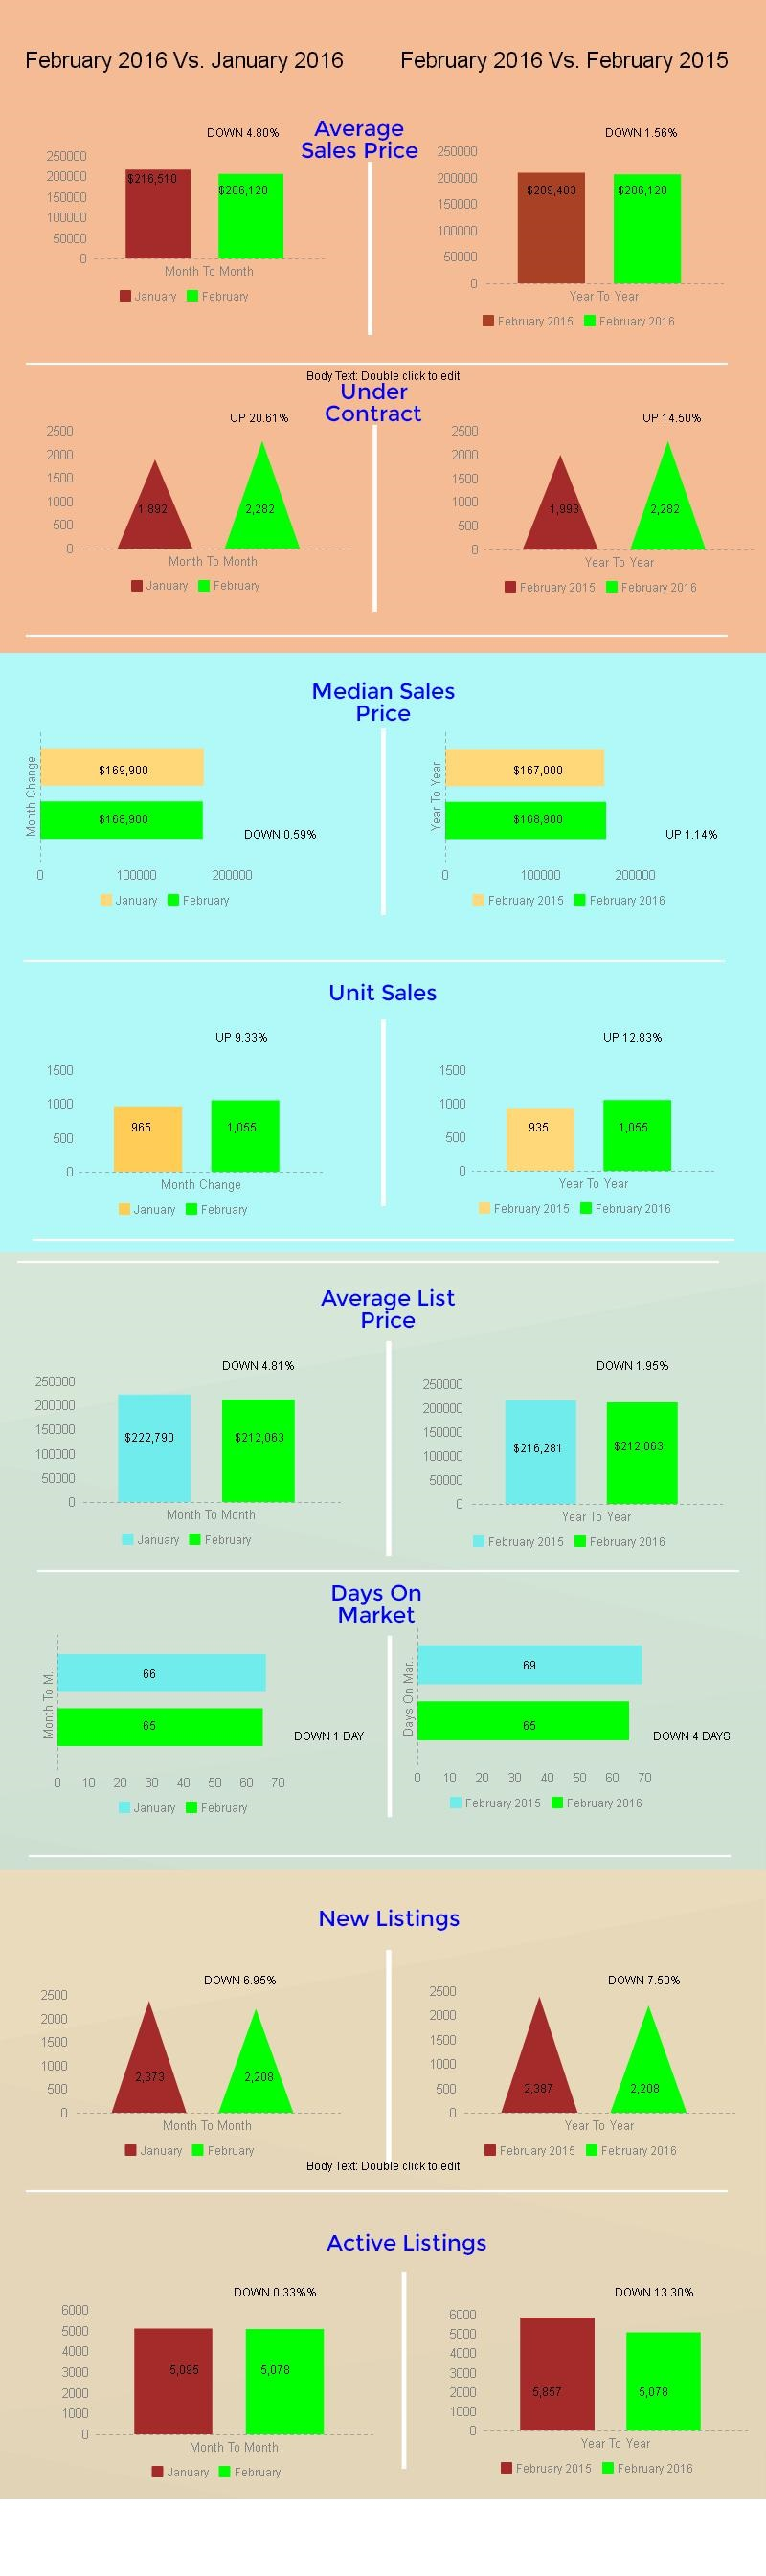 Tucson Housing Market February 2016